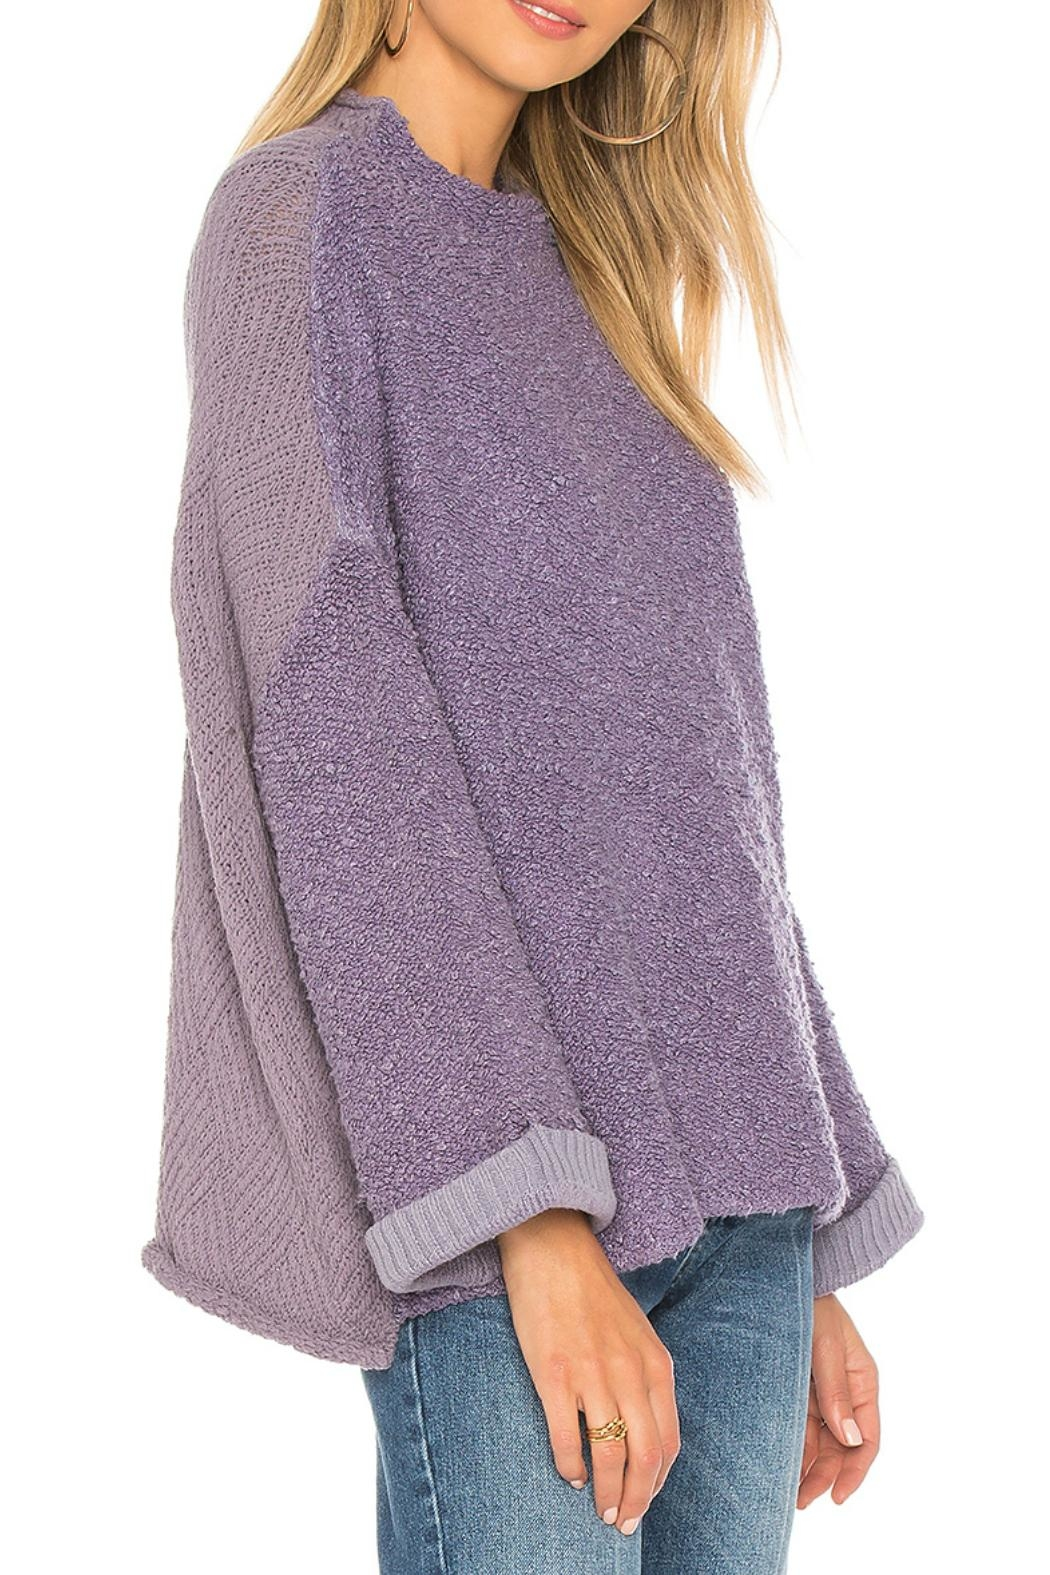 Free People Cuddle Up Pullover - Front Full Image